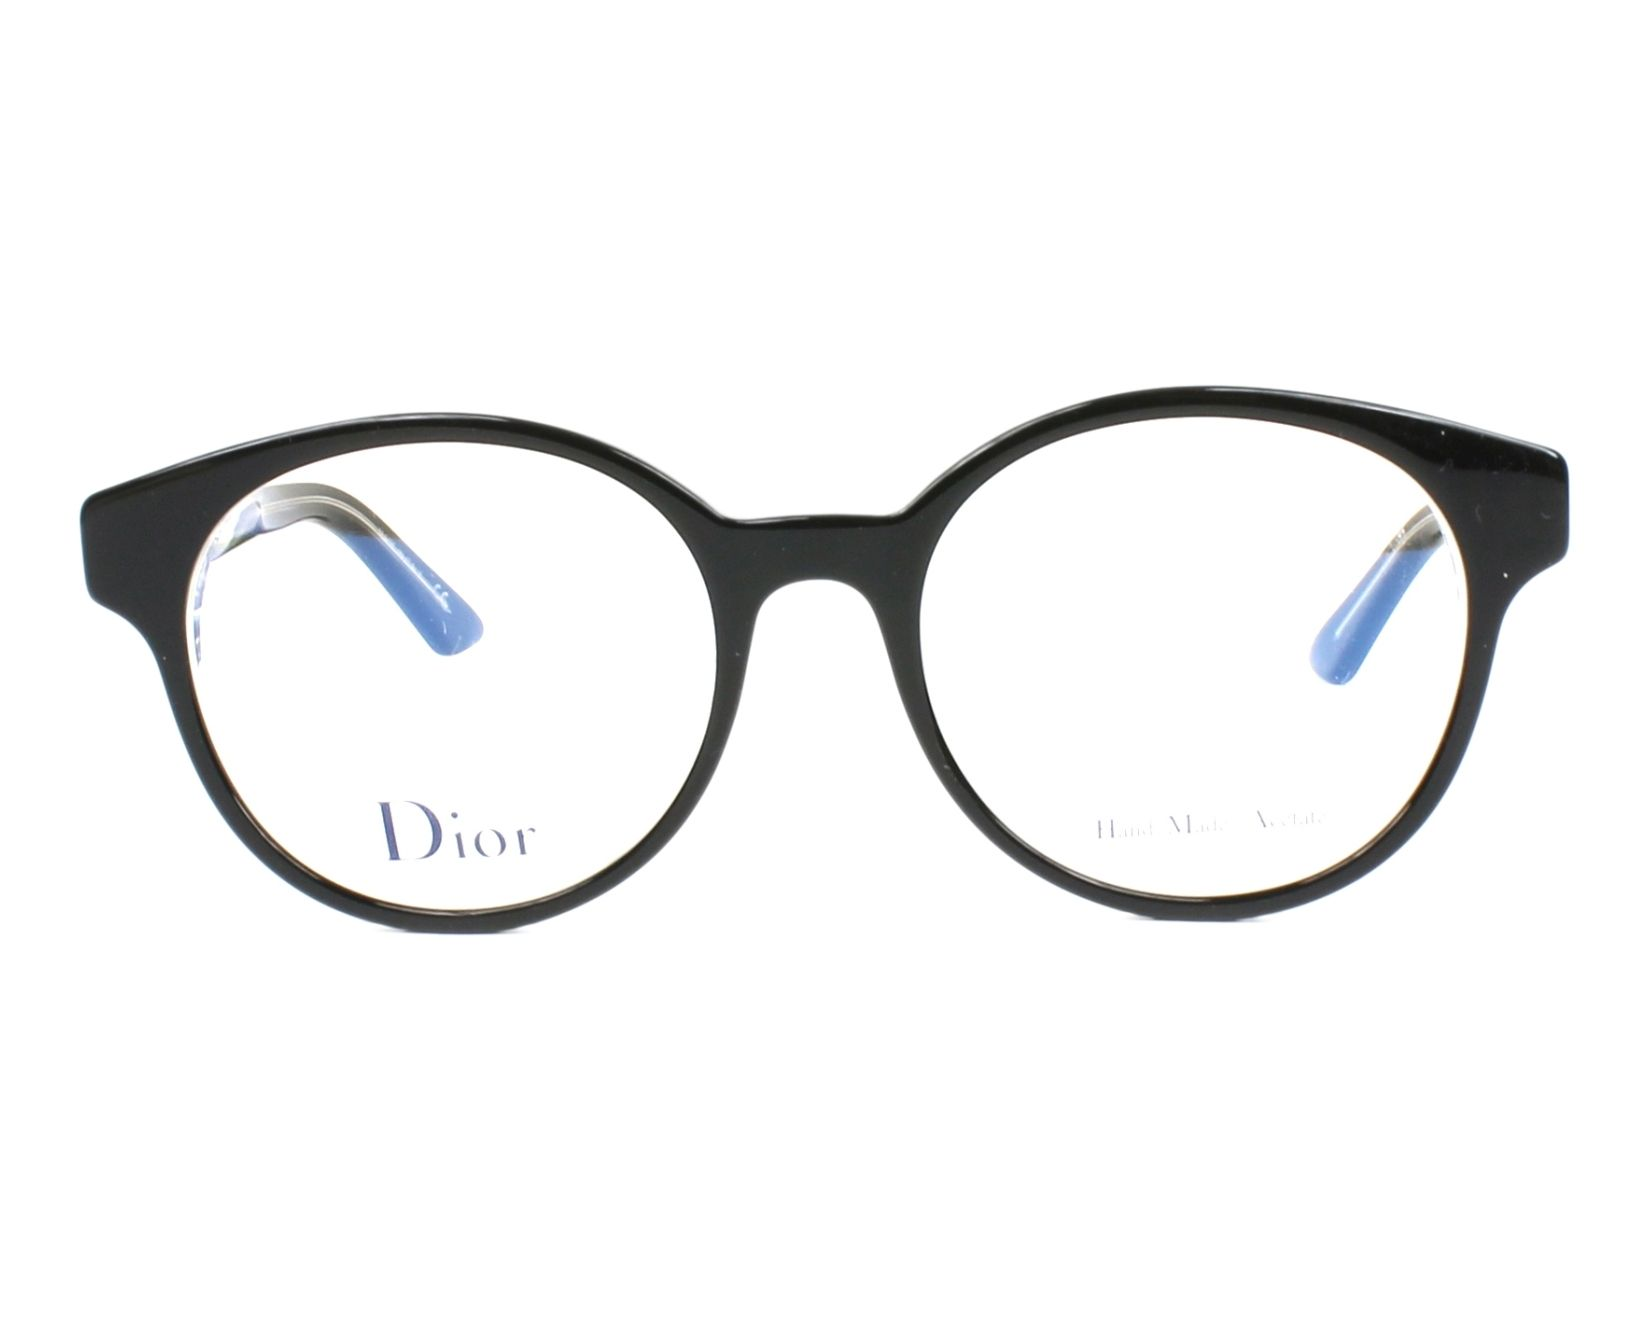 7ab3251679 eyeglasses Christian Dior MONTAIGNE-9 G99 51-18 Black Crystal front view